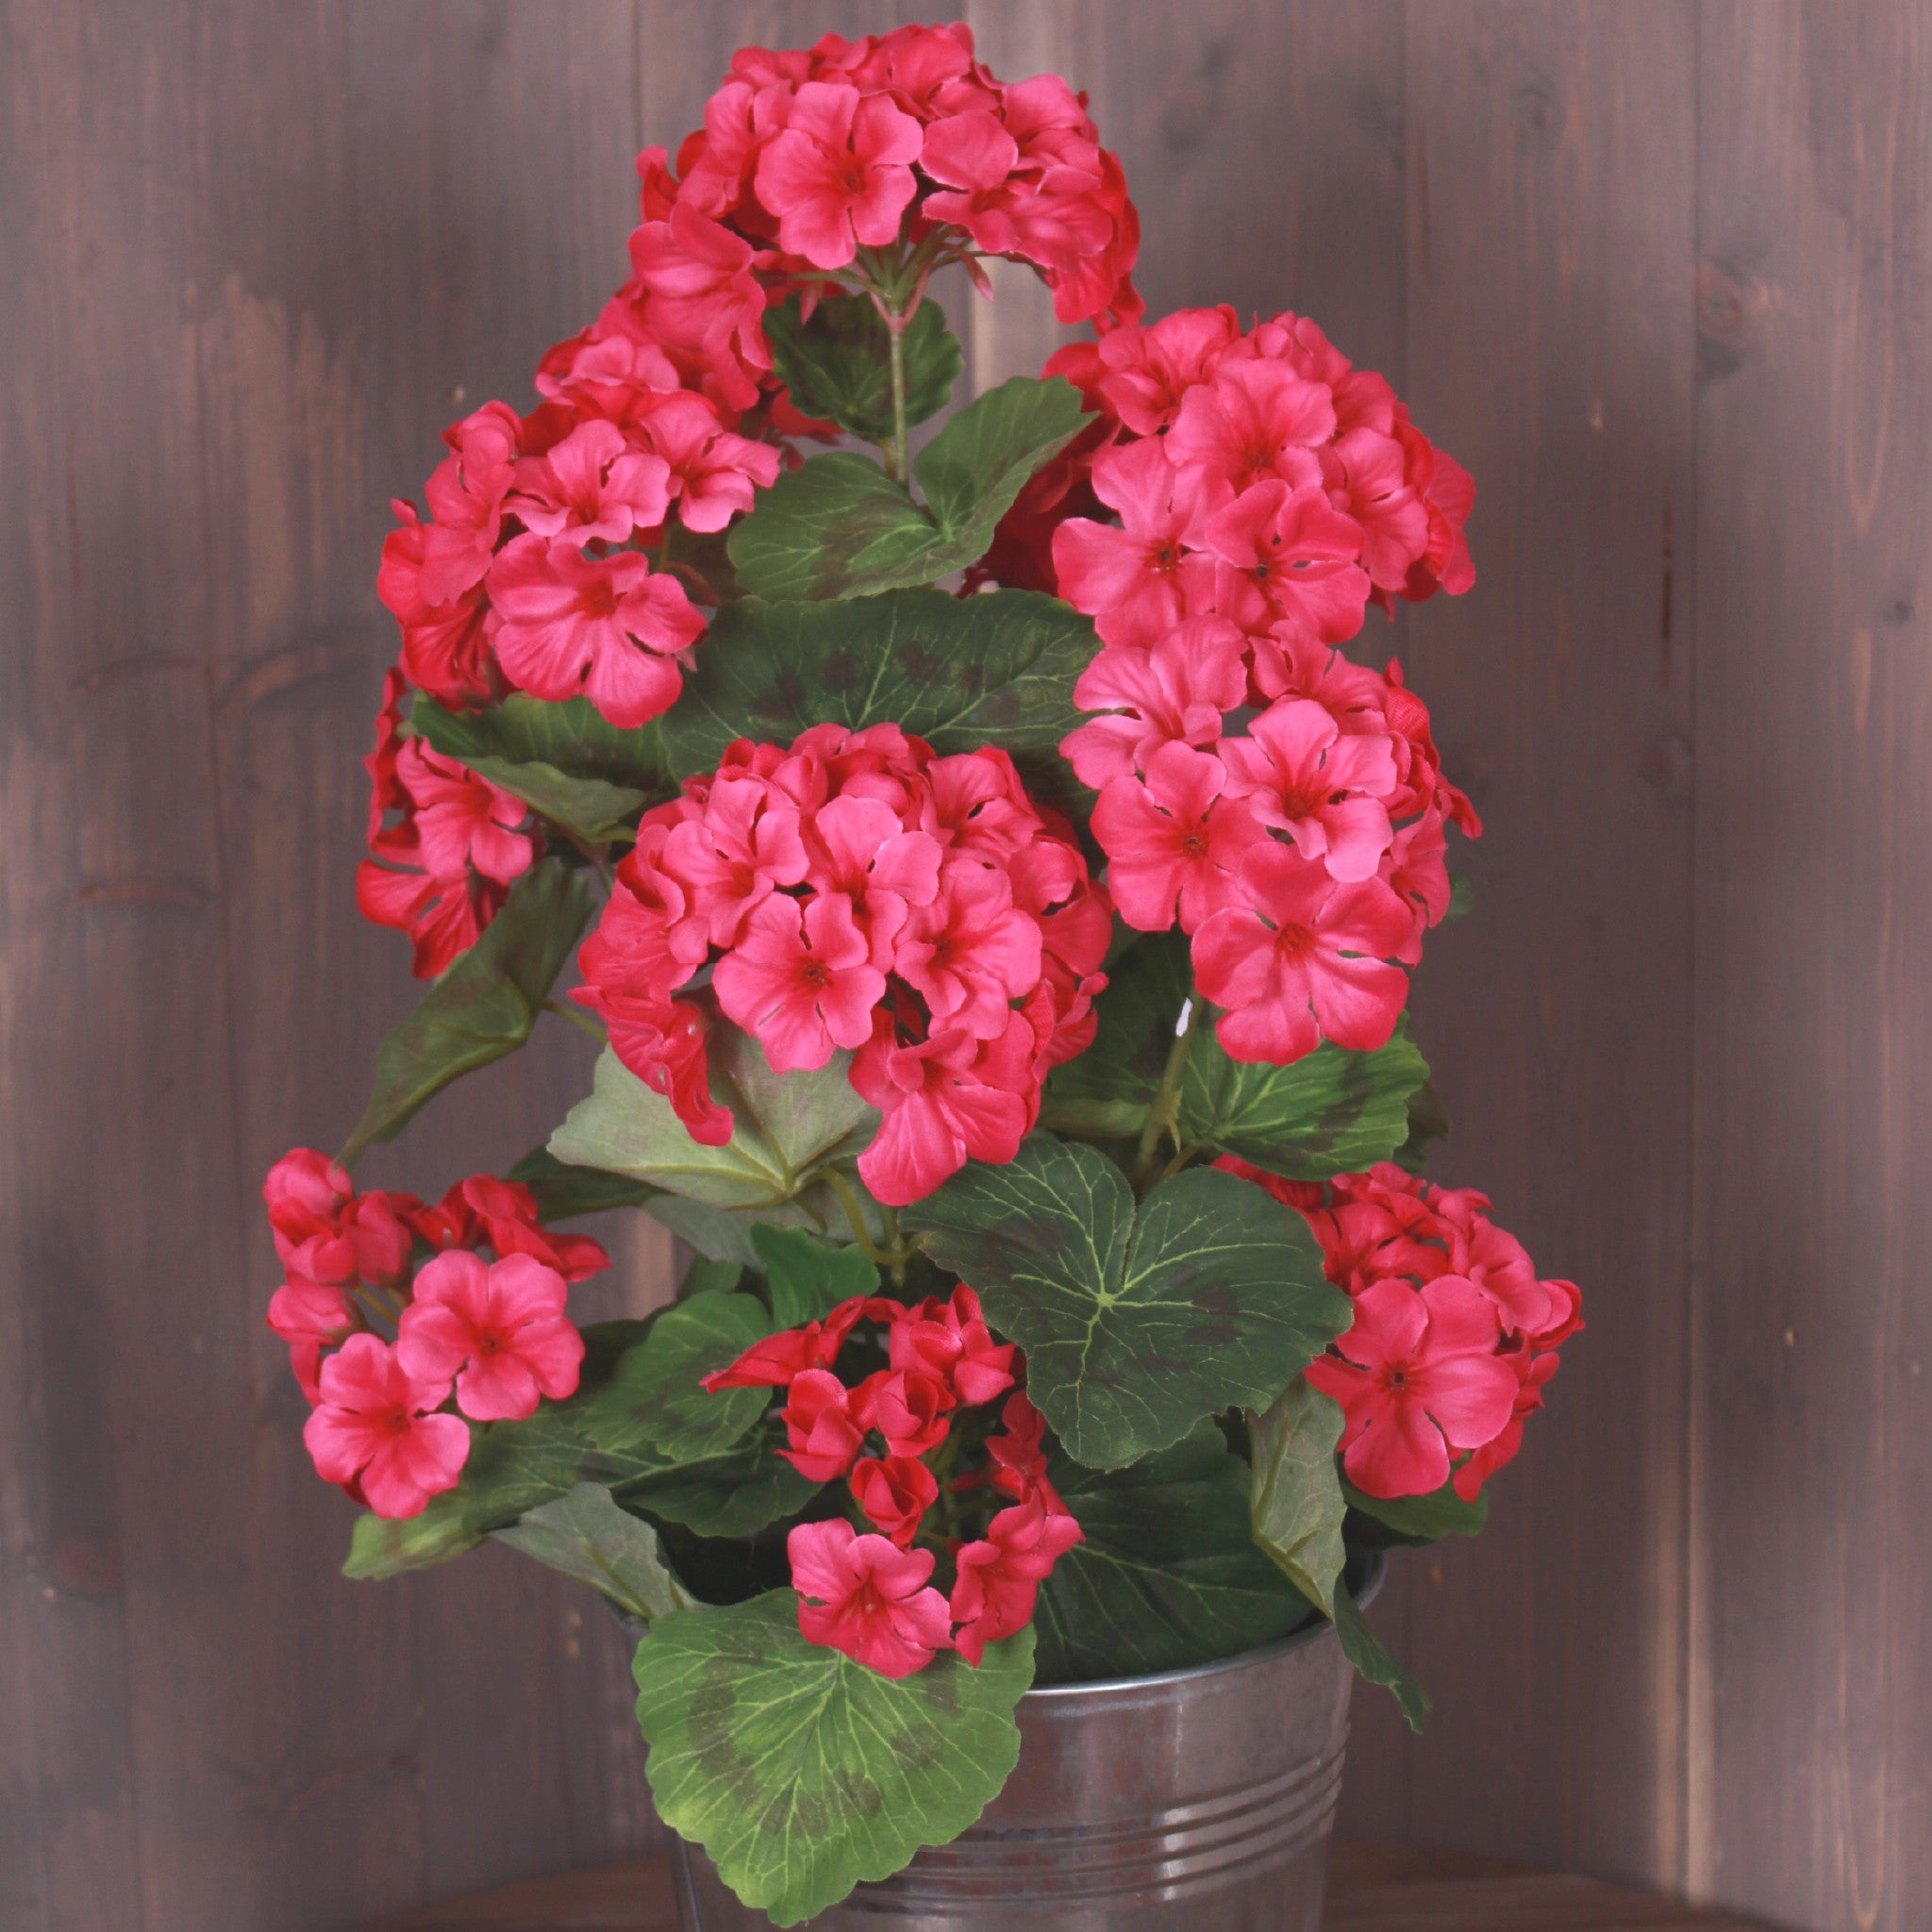 Genial Potted Geraniums!